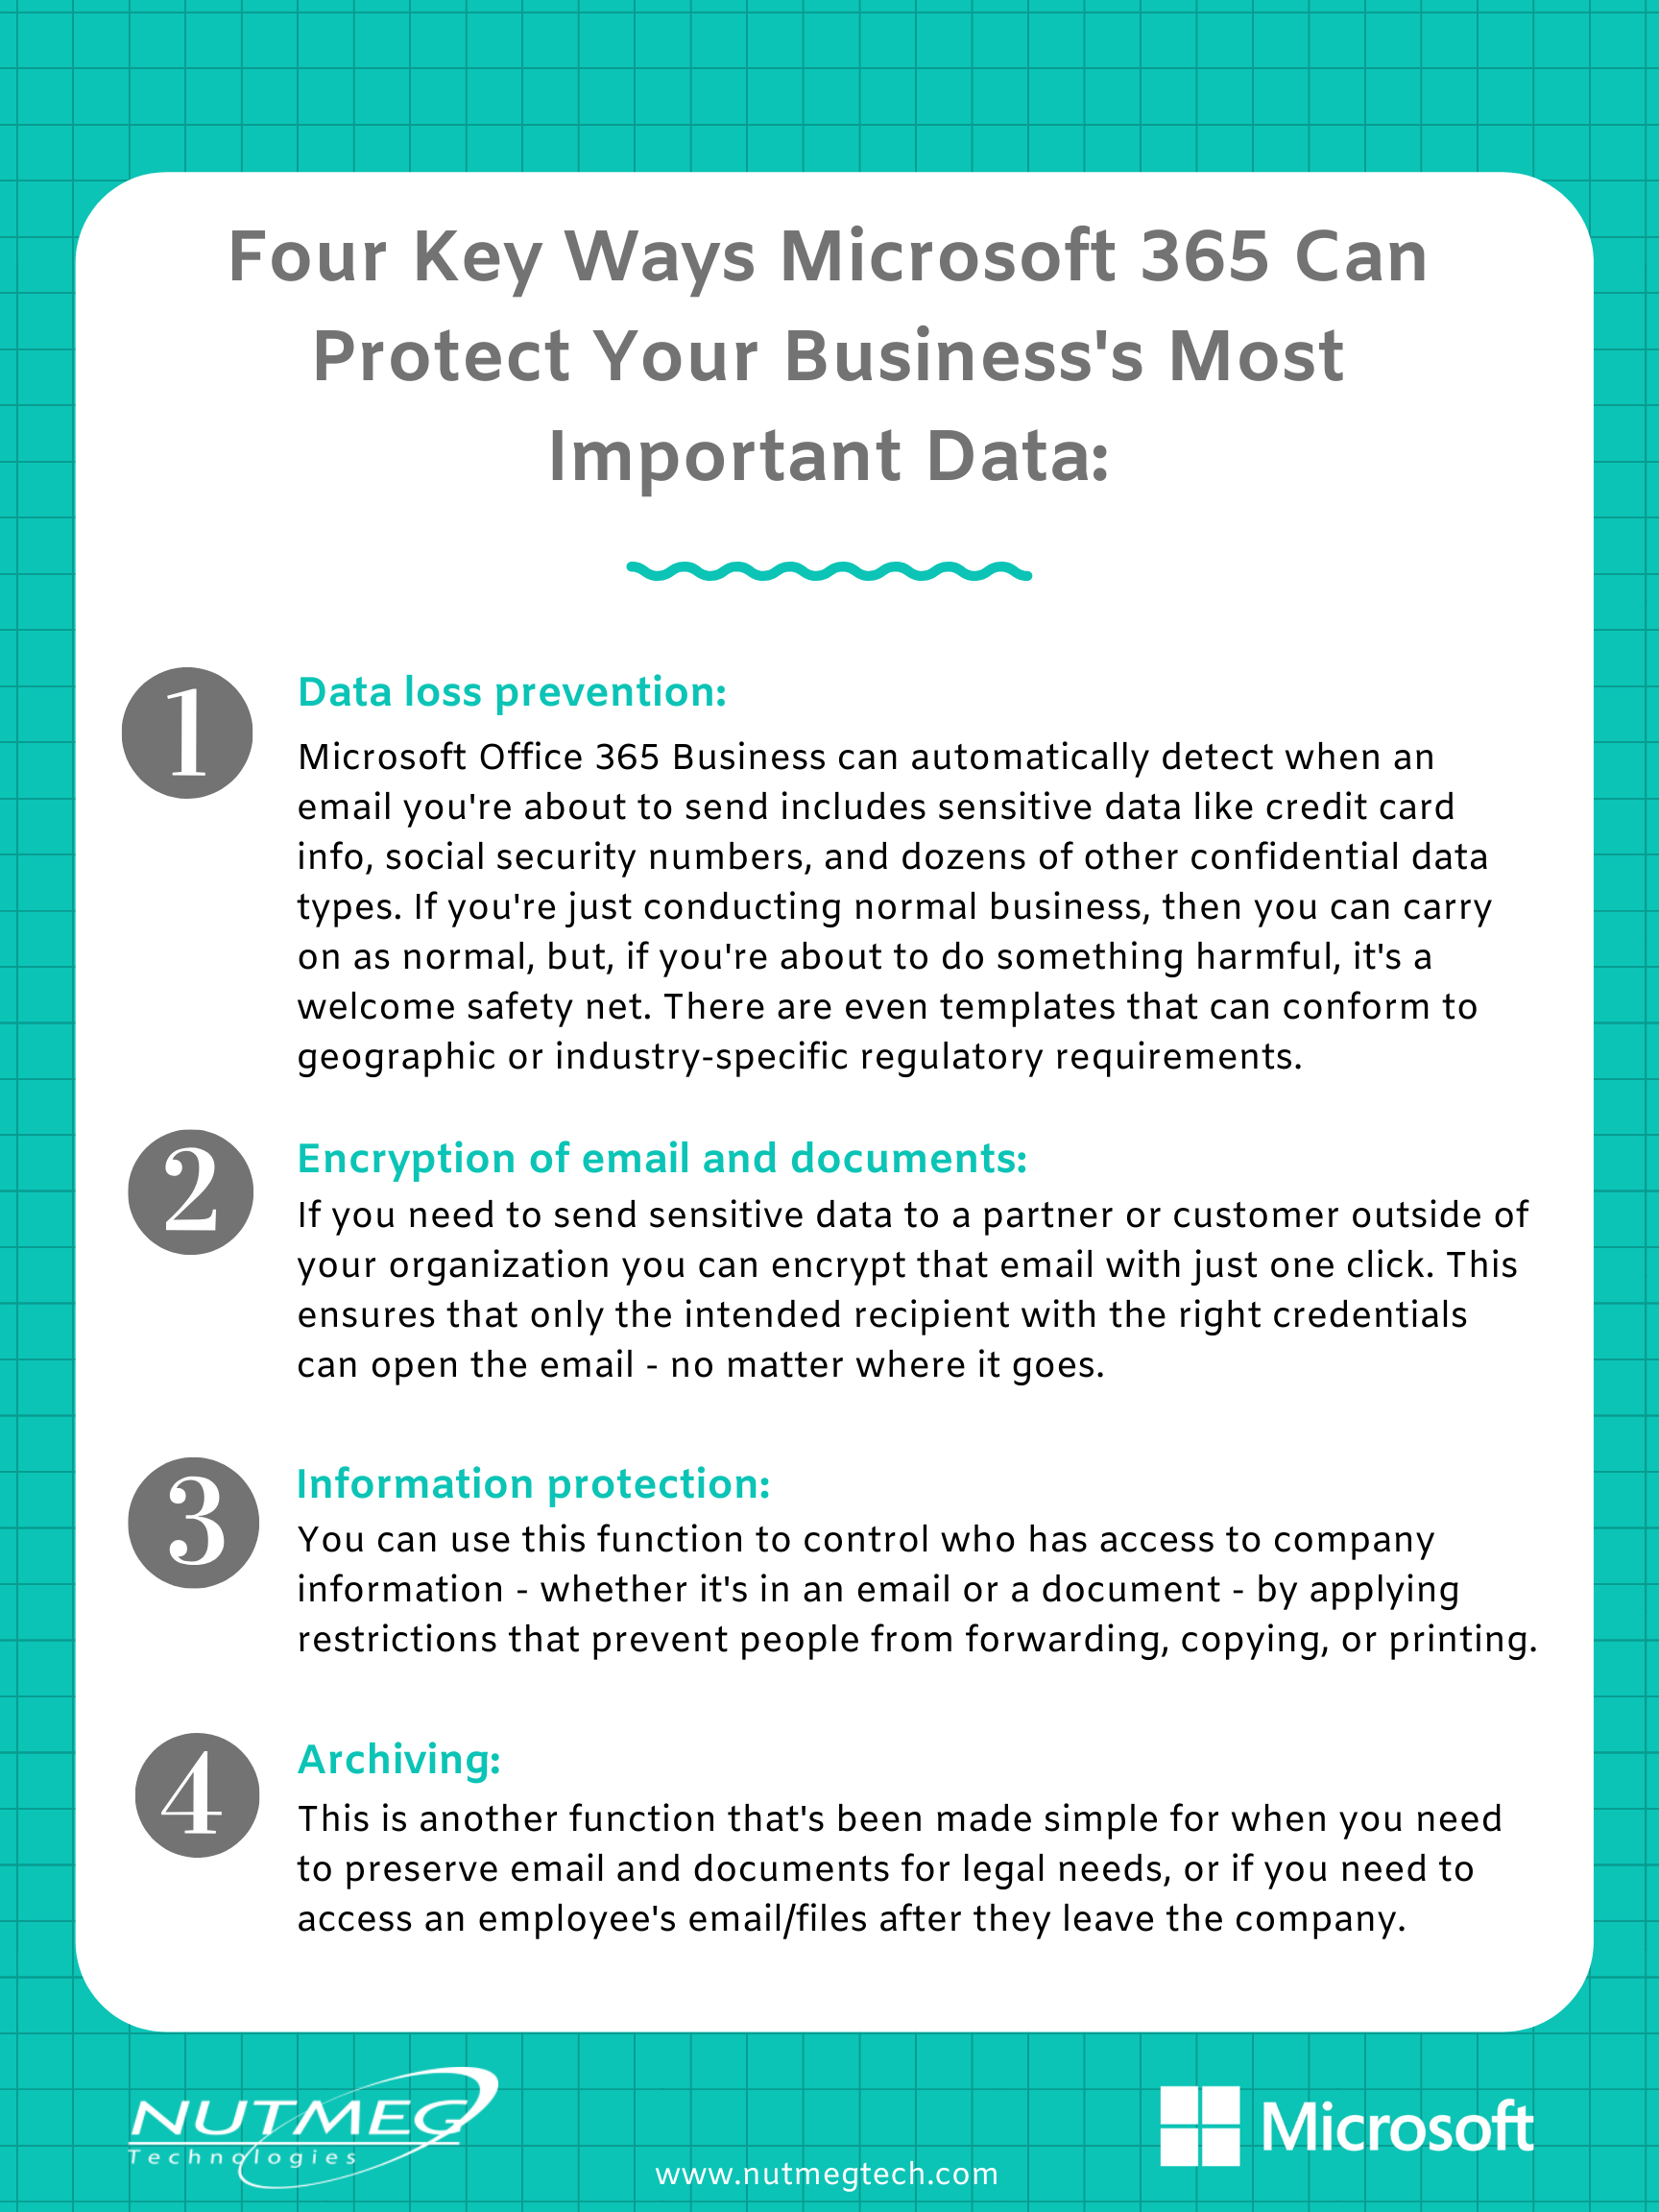 4 Key ways Microsoft 365 can protect your business's most important data